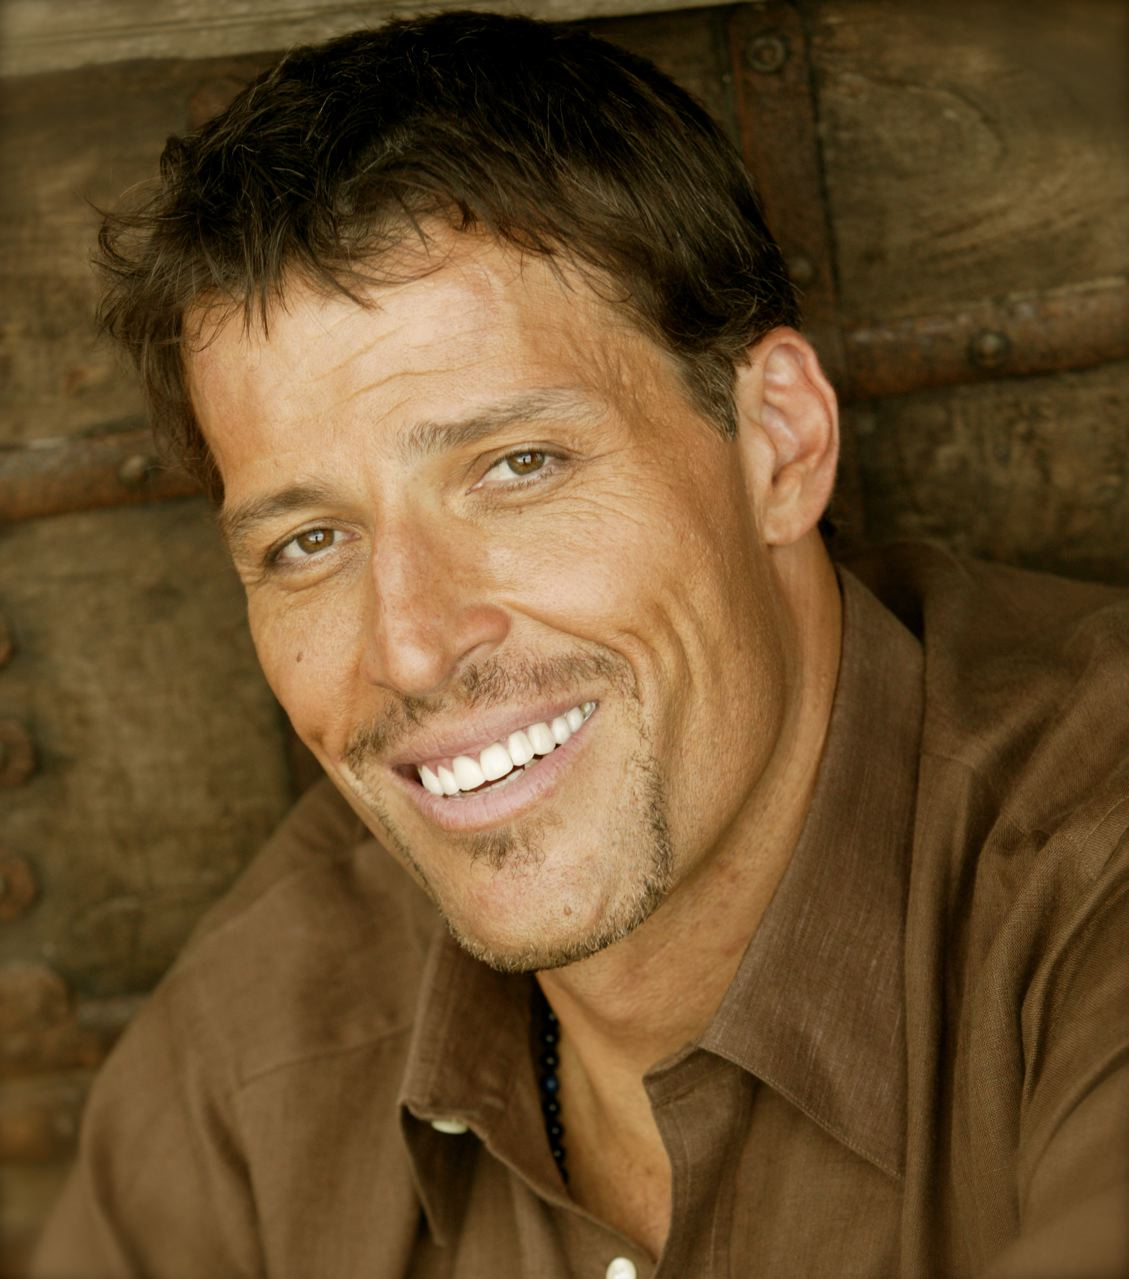 Tony robbins dvd collection free